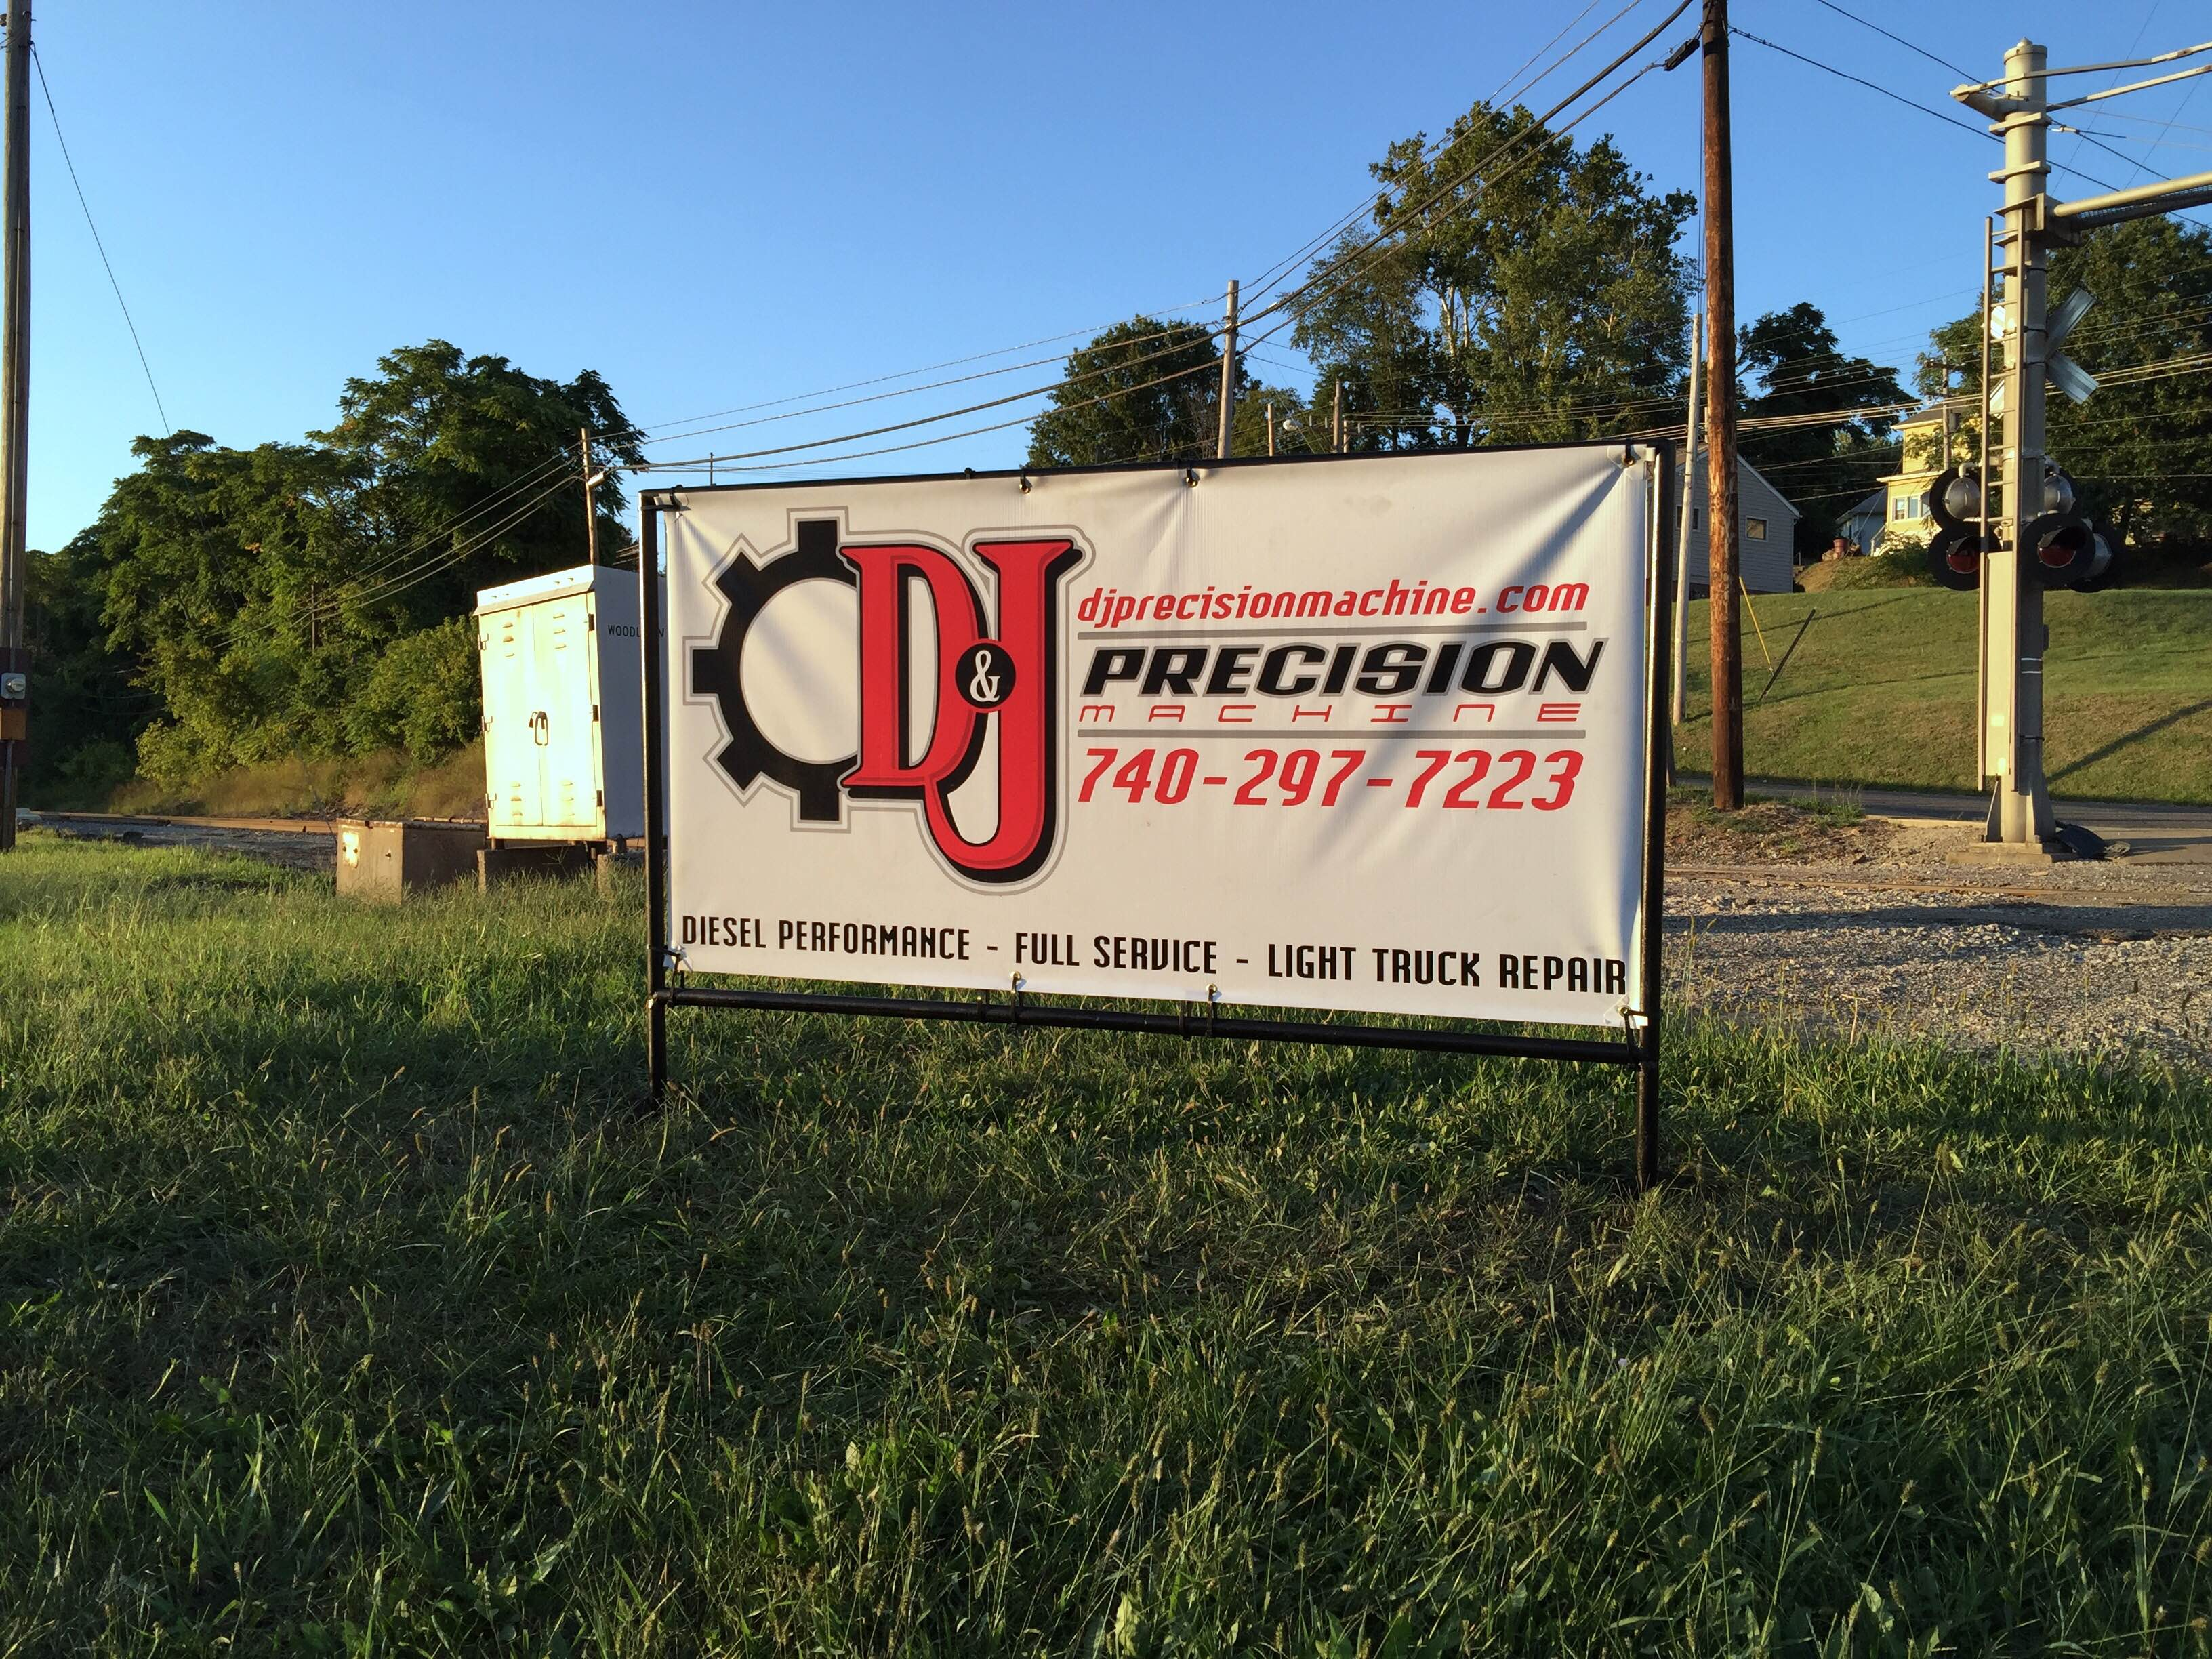 D&J Precision Machine 706 Woodlawn Ave Cambridge Ohio